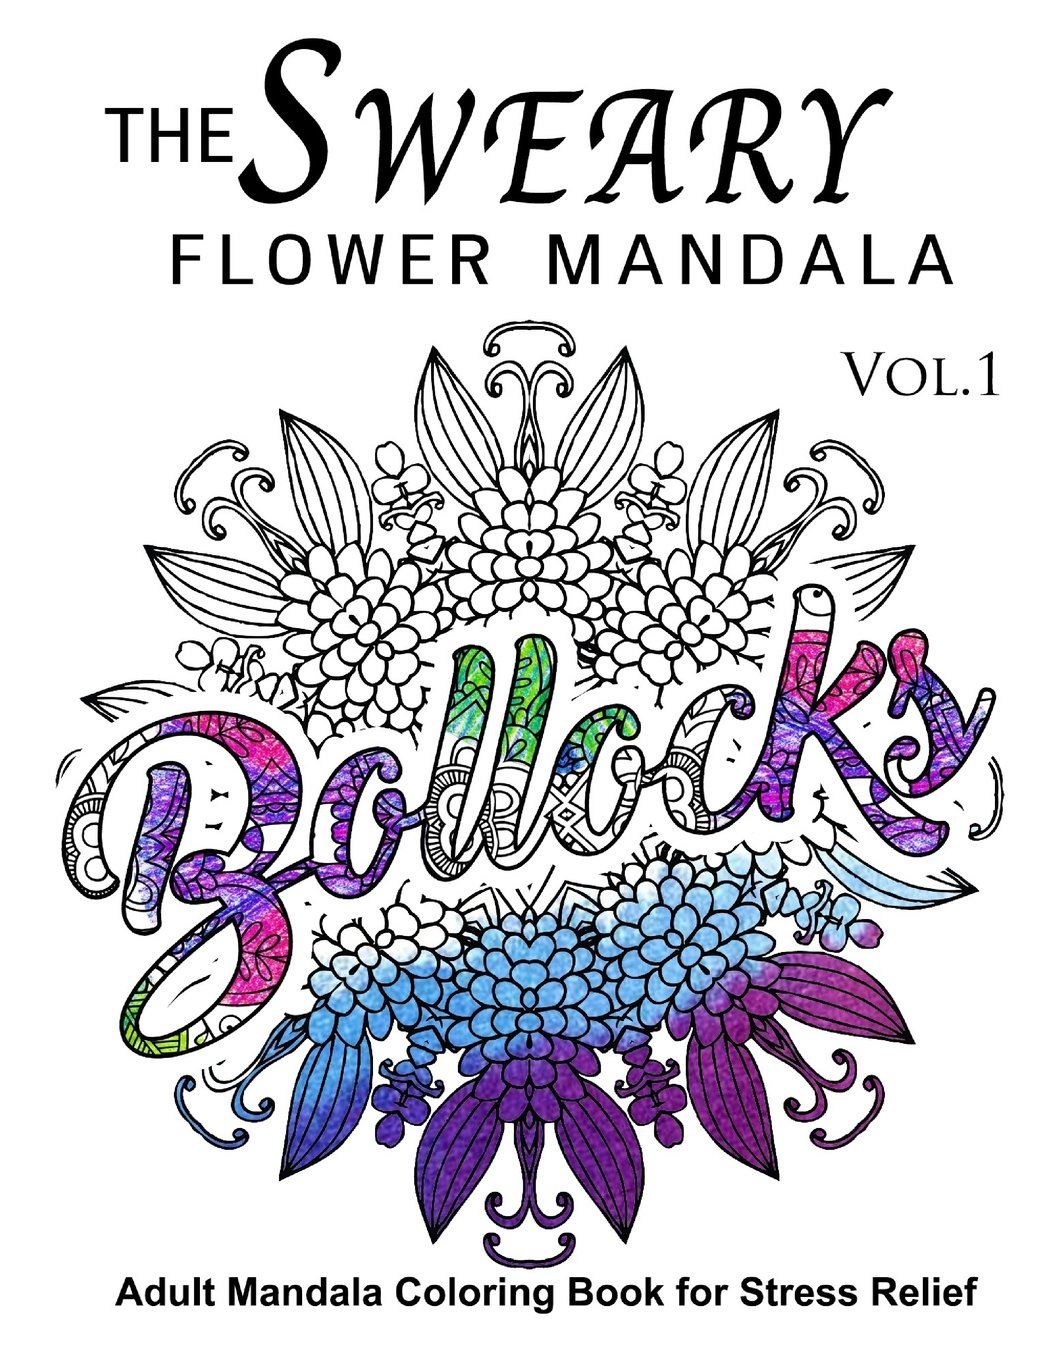 The Sweary Flower Mandala Vol.1: Adult Mandala Coloring books for Stress Relief (Volume 1)